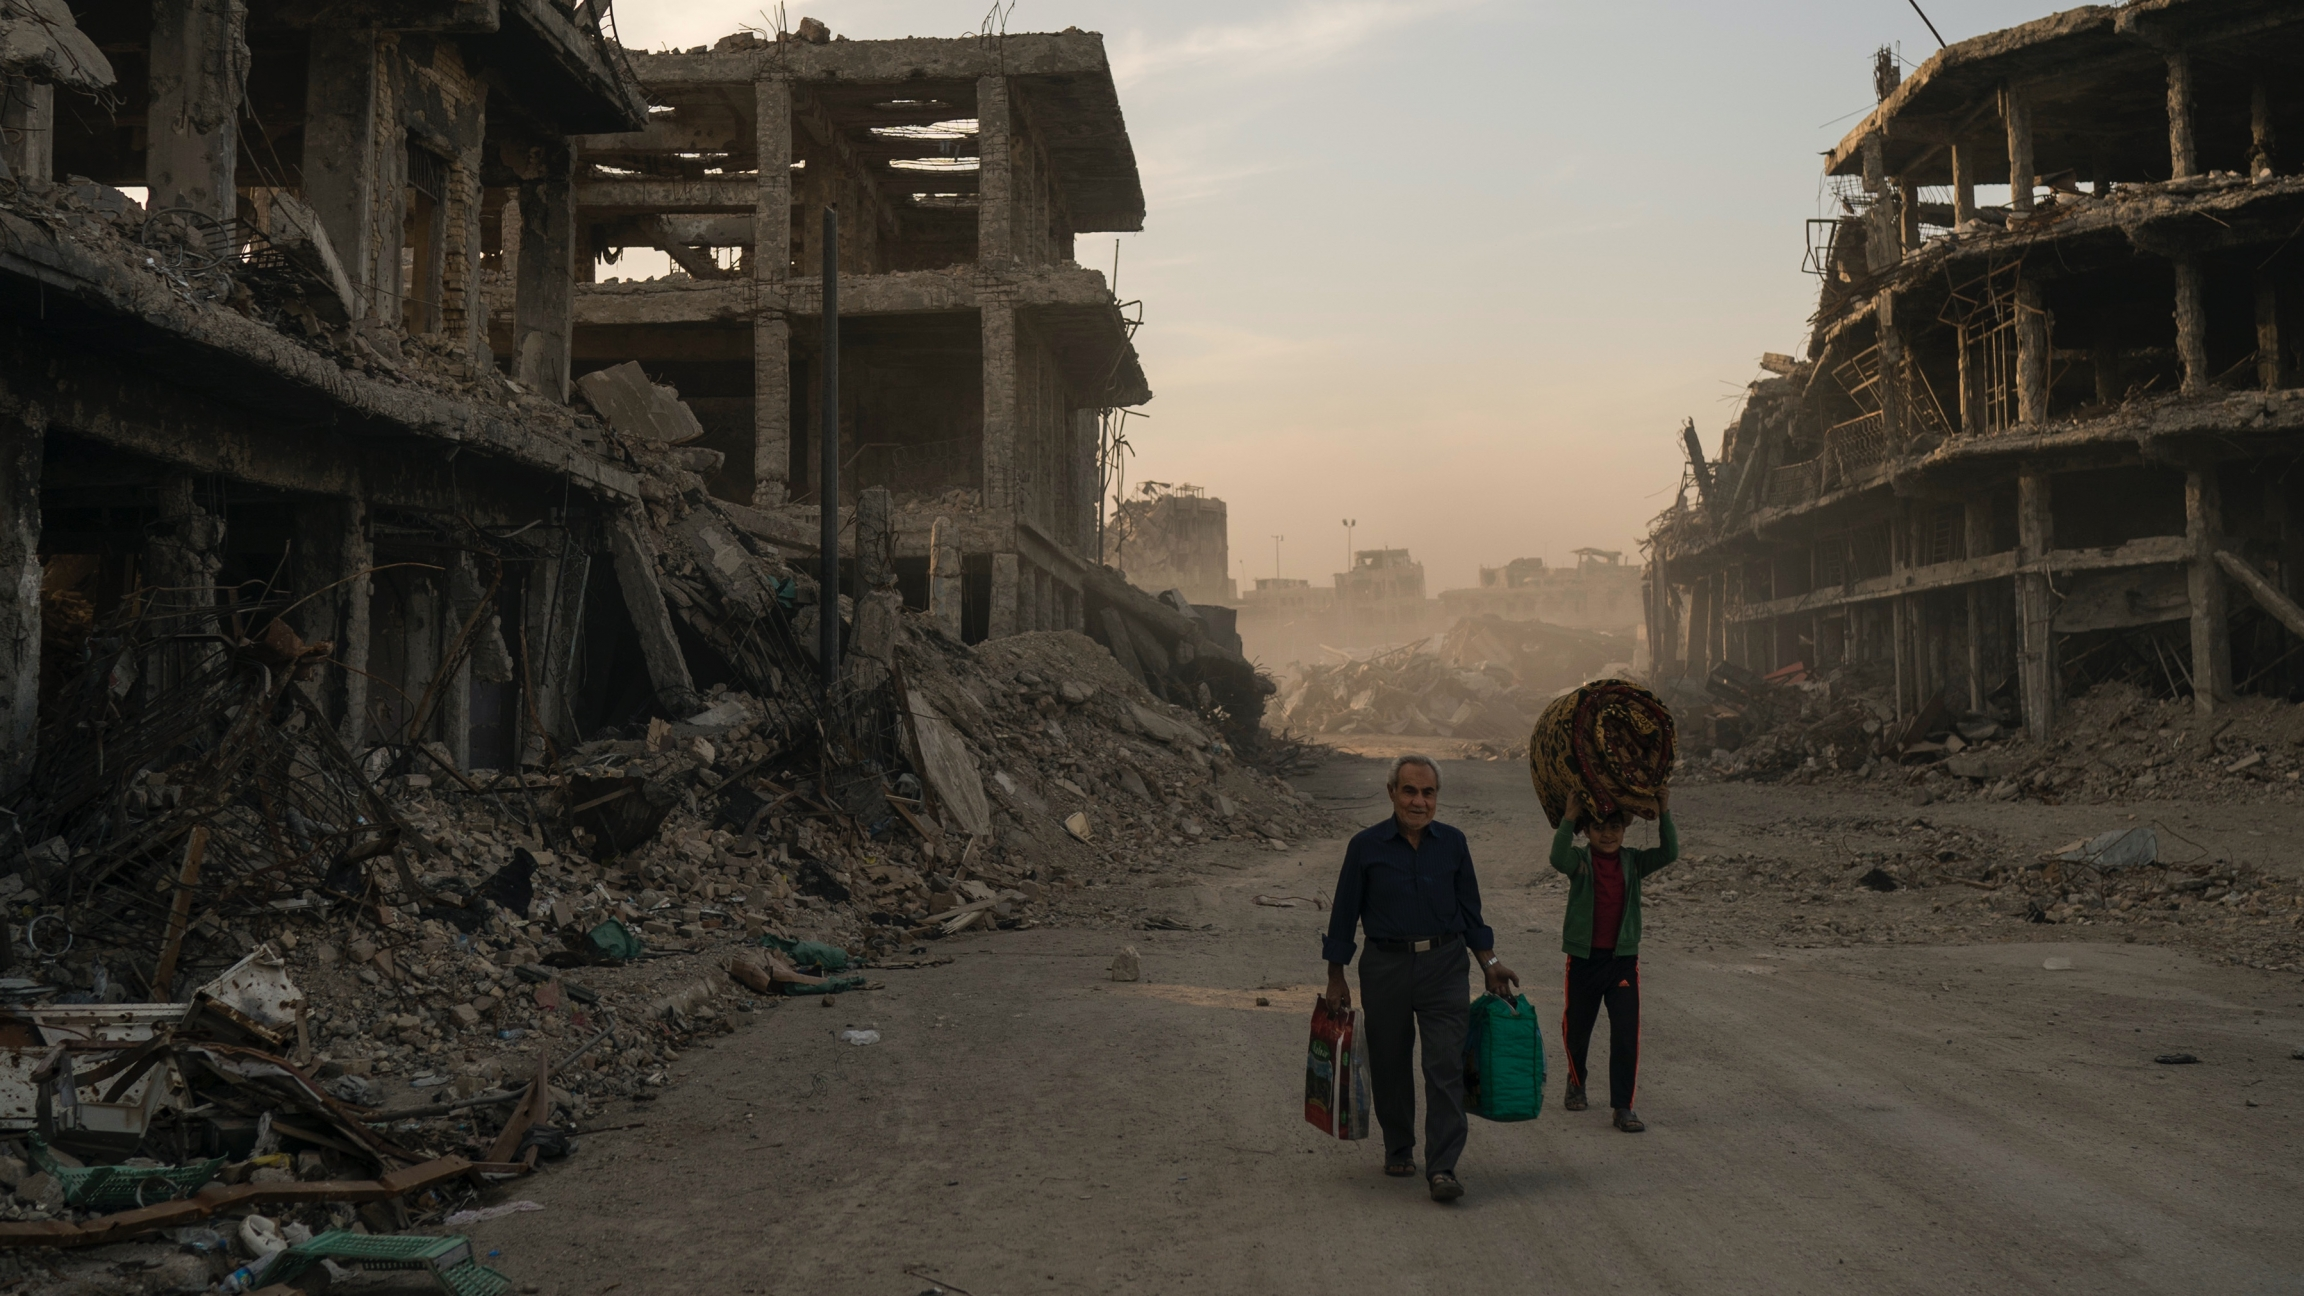 Two people carry luggage down a bombed out street in Mosul.